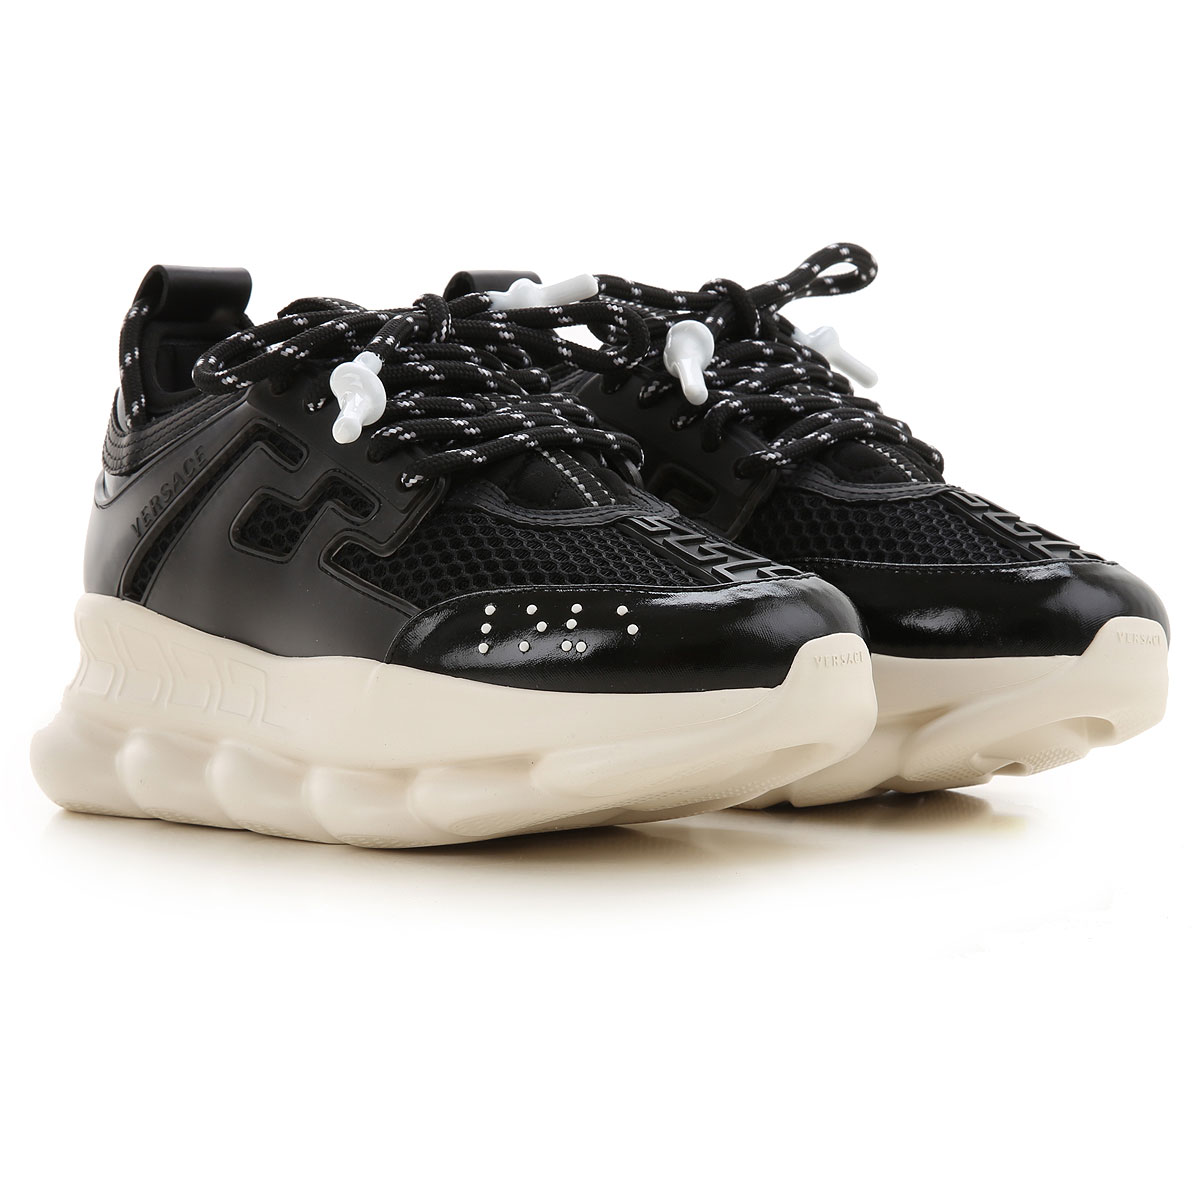 Gianni Versace Sneakers for Women On Sale, Black, Leather, 2019, 10 6 8 8.5